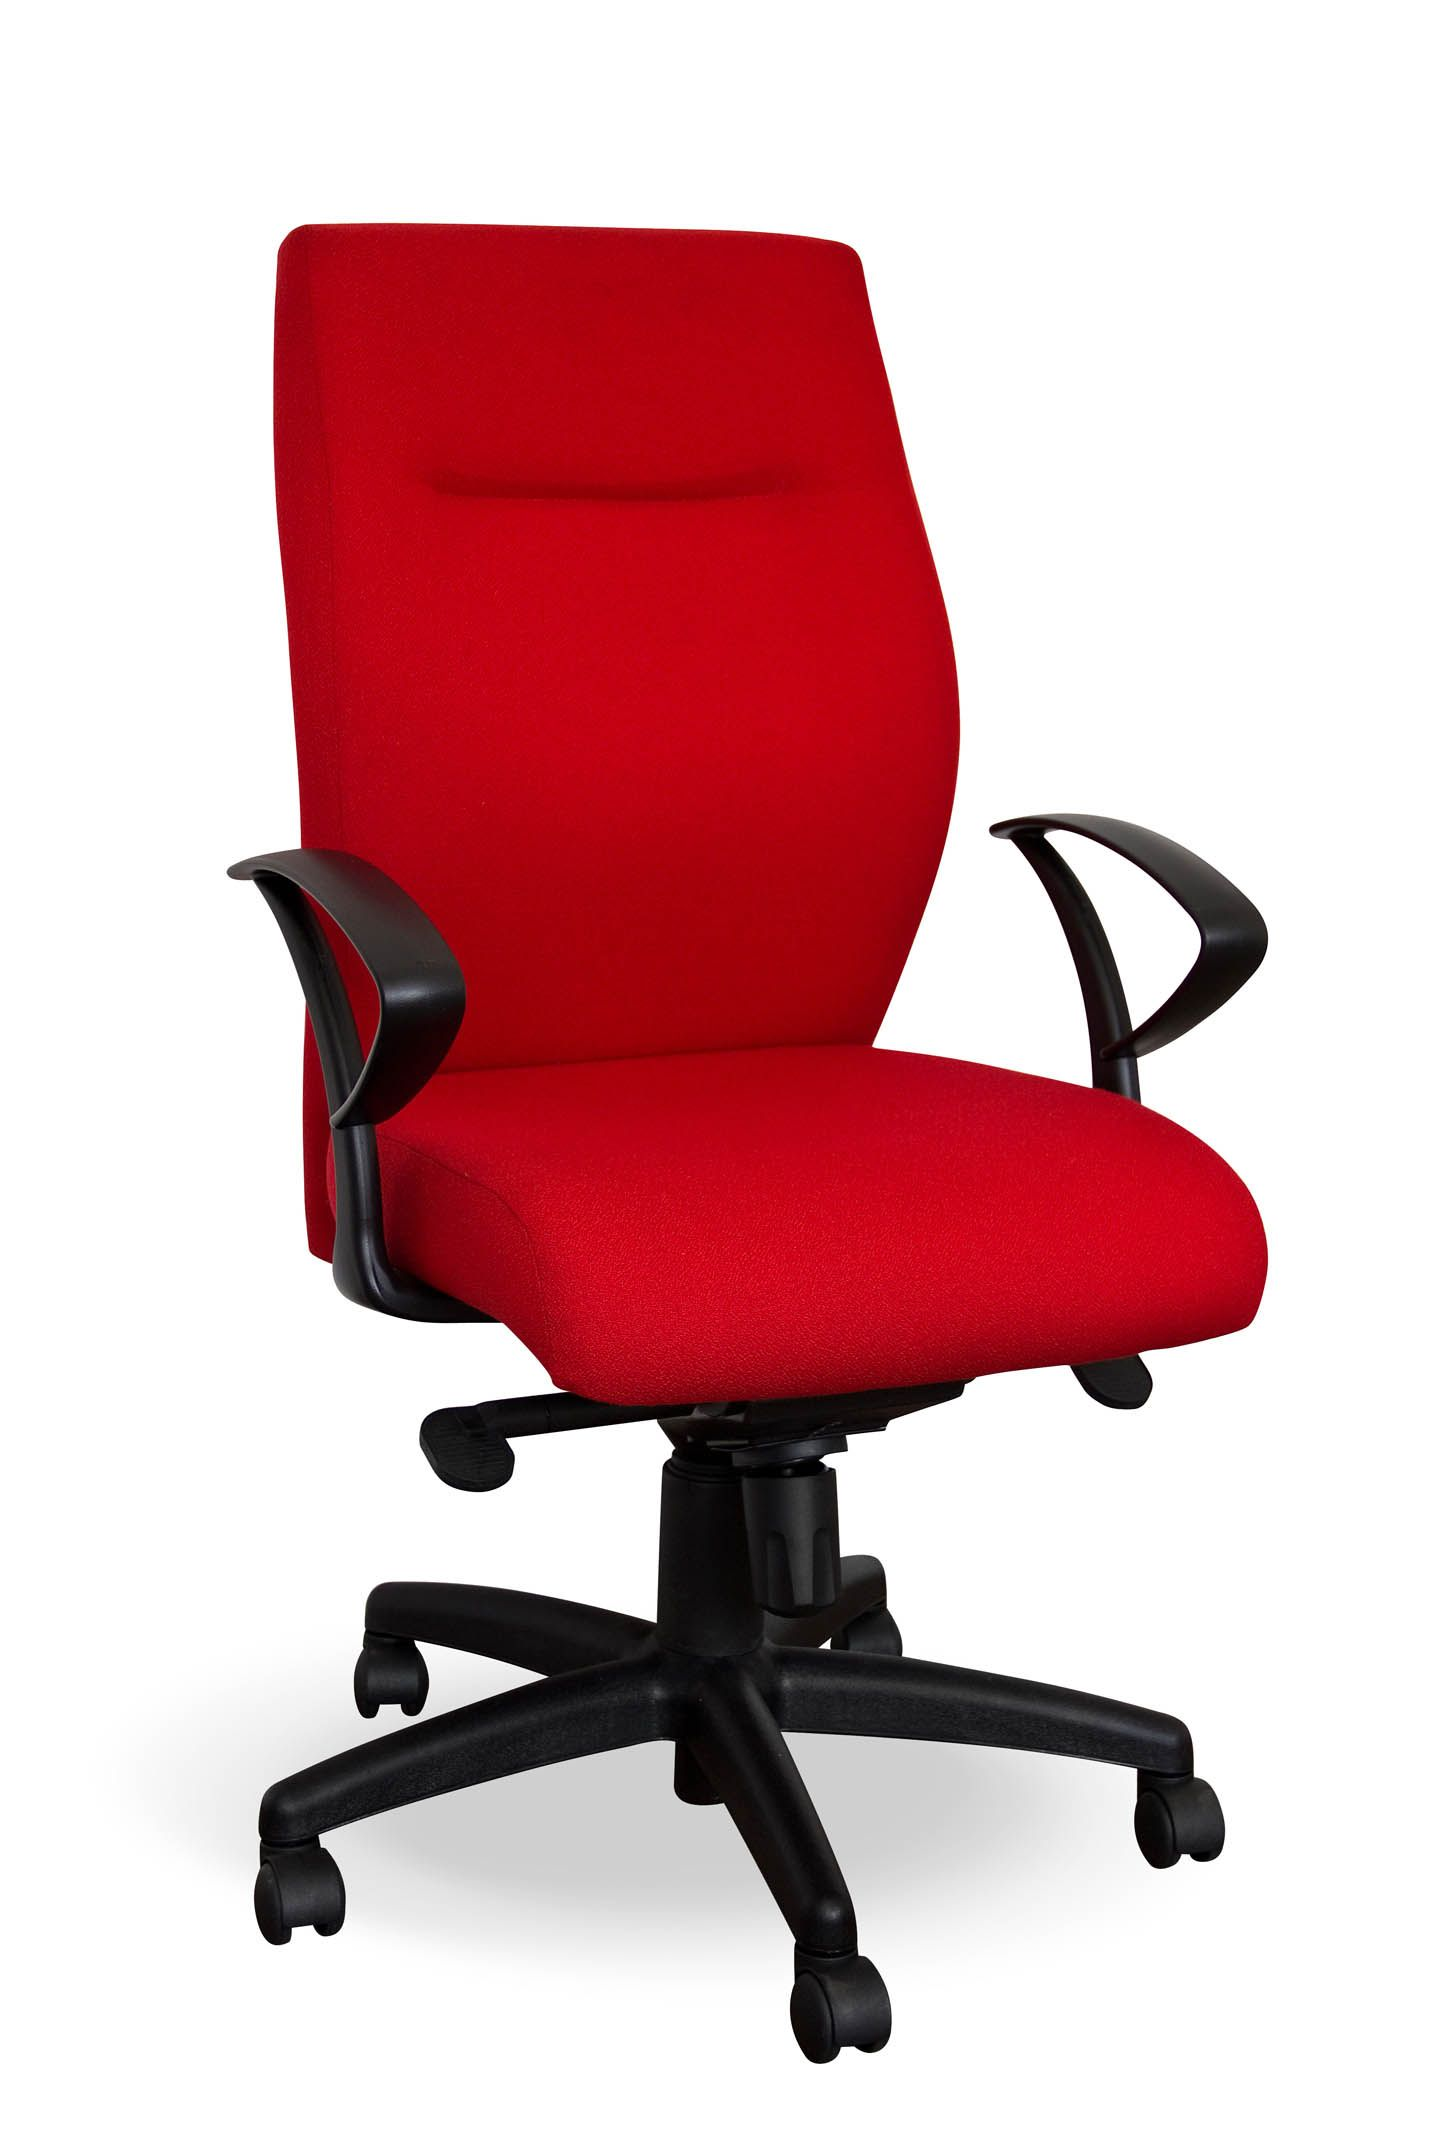 office chair picture. Fabulous Black And Red Color Modern Office Chair Design Come Arm Also Fabric Seat Back As Well Adjustable Height Picture